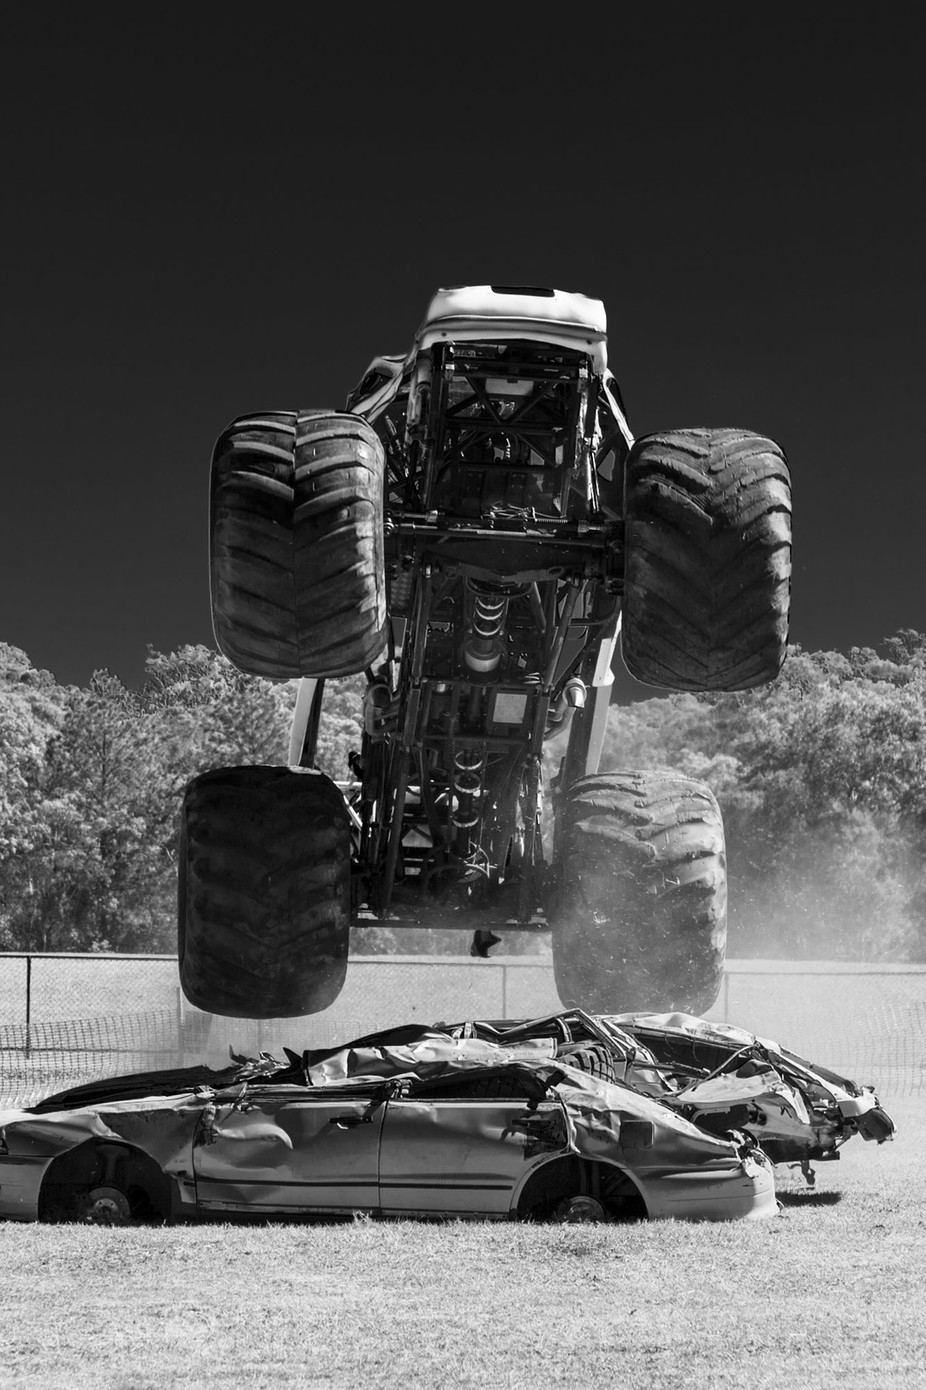 Monster Truck Jump by damienkeffyn - Large Photo Contest